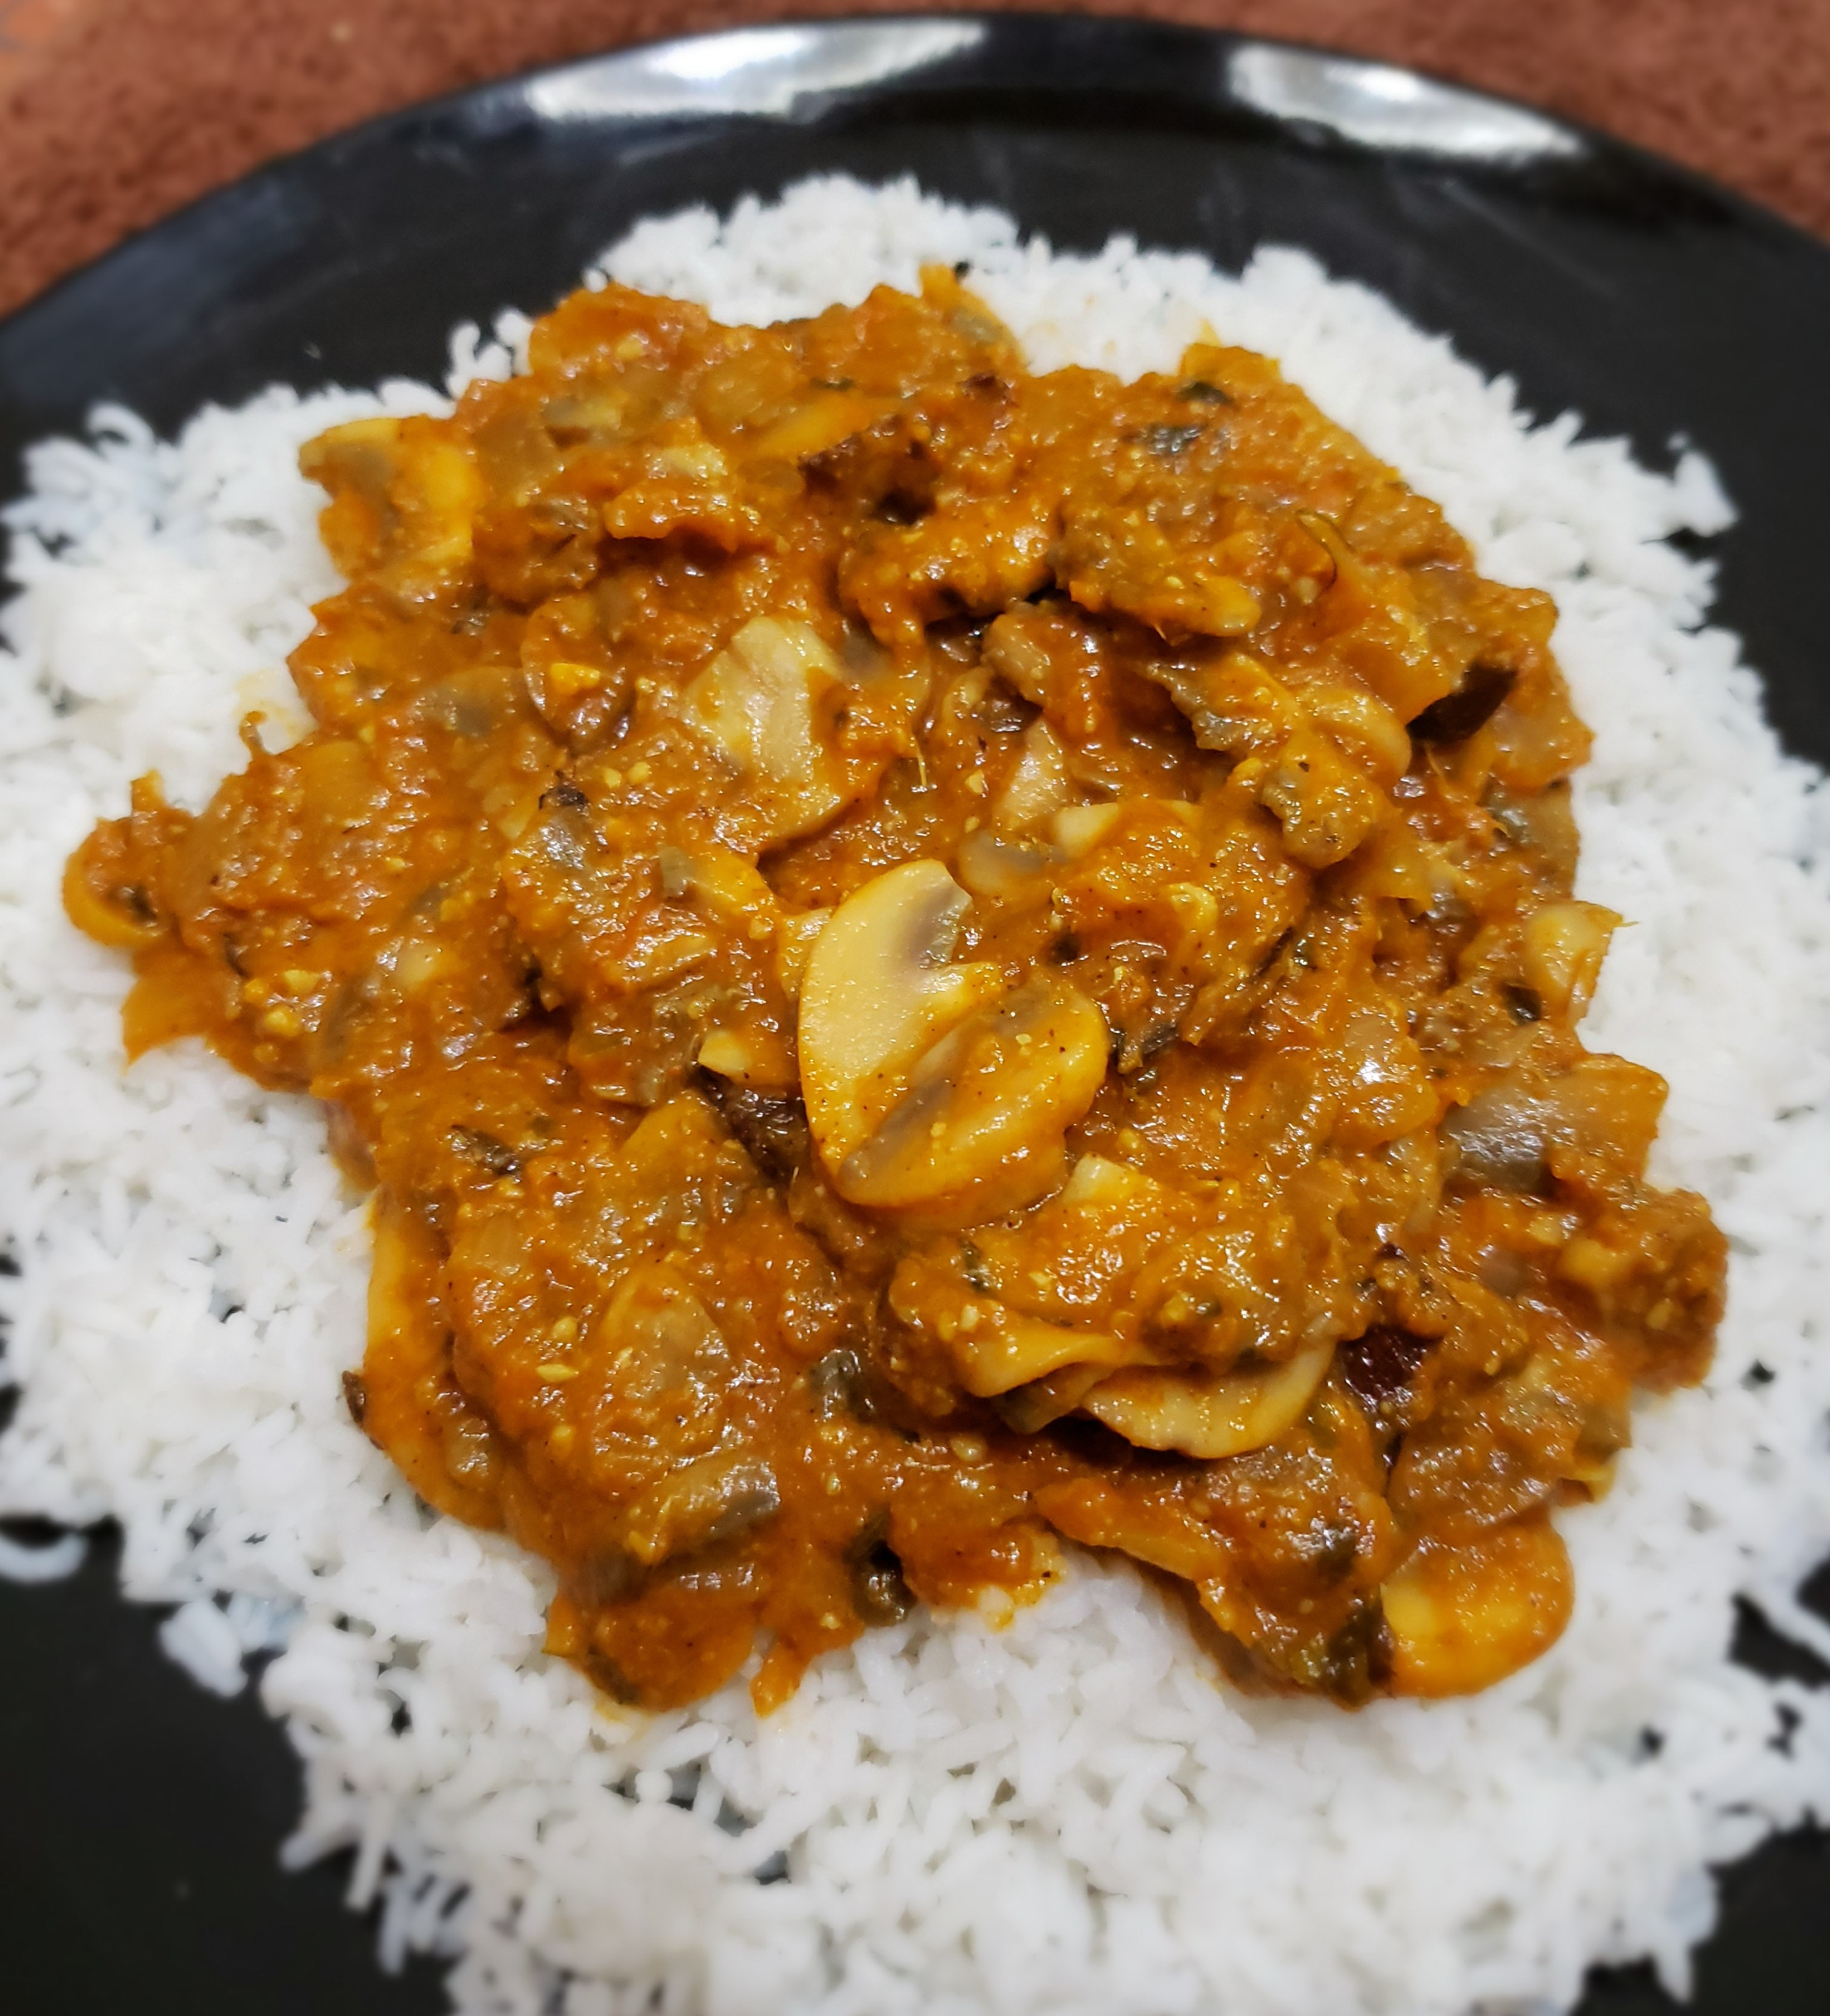 Mushrooms add a lot of bulk and nutrition to meals without those pesky calories, evidenced by this delicious curry that comes in at just 126 calories per serving. Try this Indian-inspired curry with 3/4 cup of basmati rice for an additional 150 calories and a 123-calorie side of dal for a total of 399 calories on your plate.